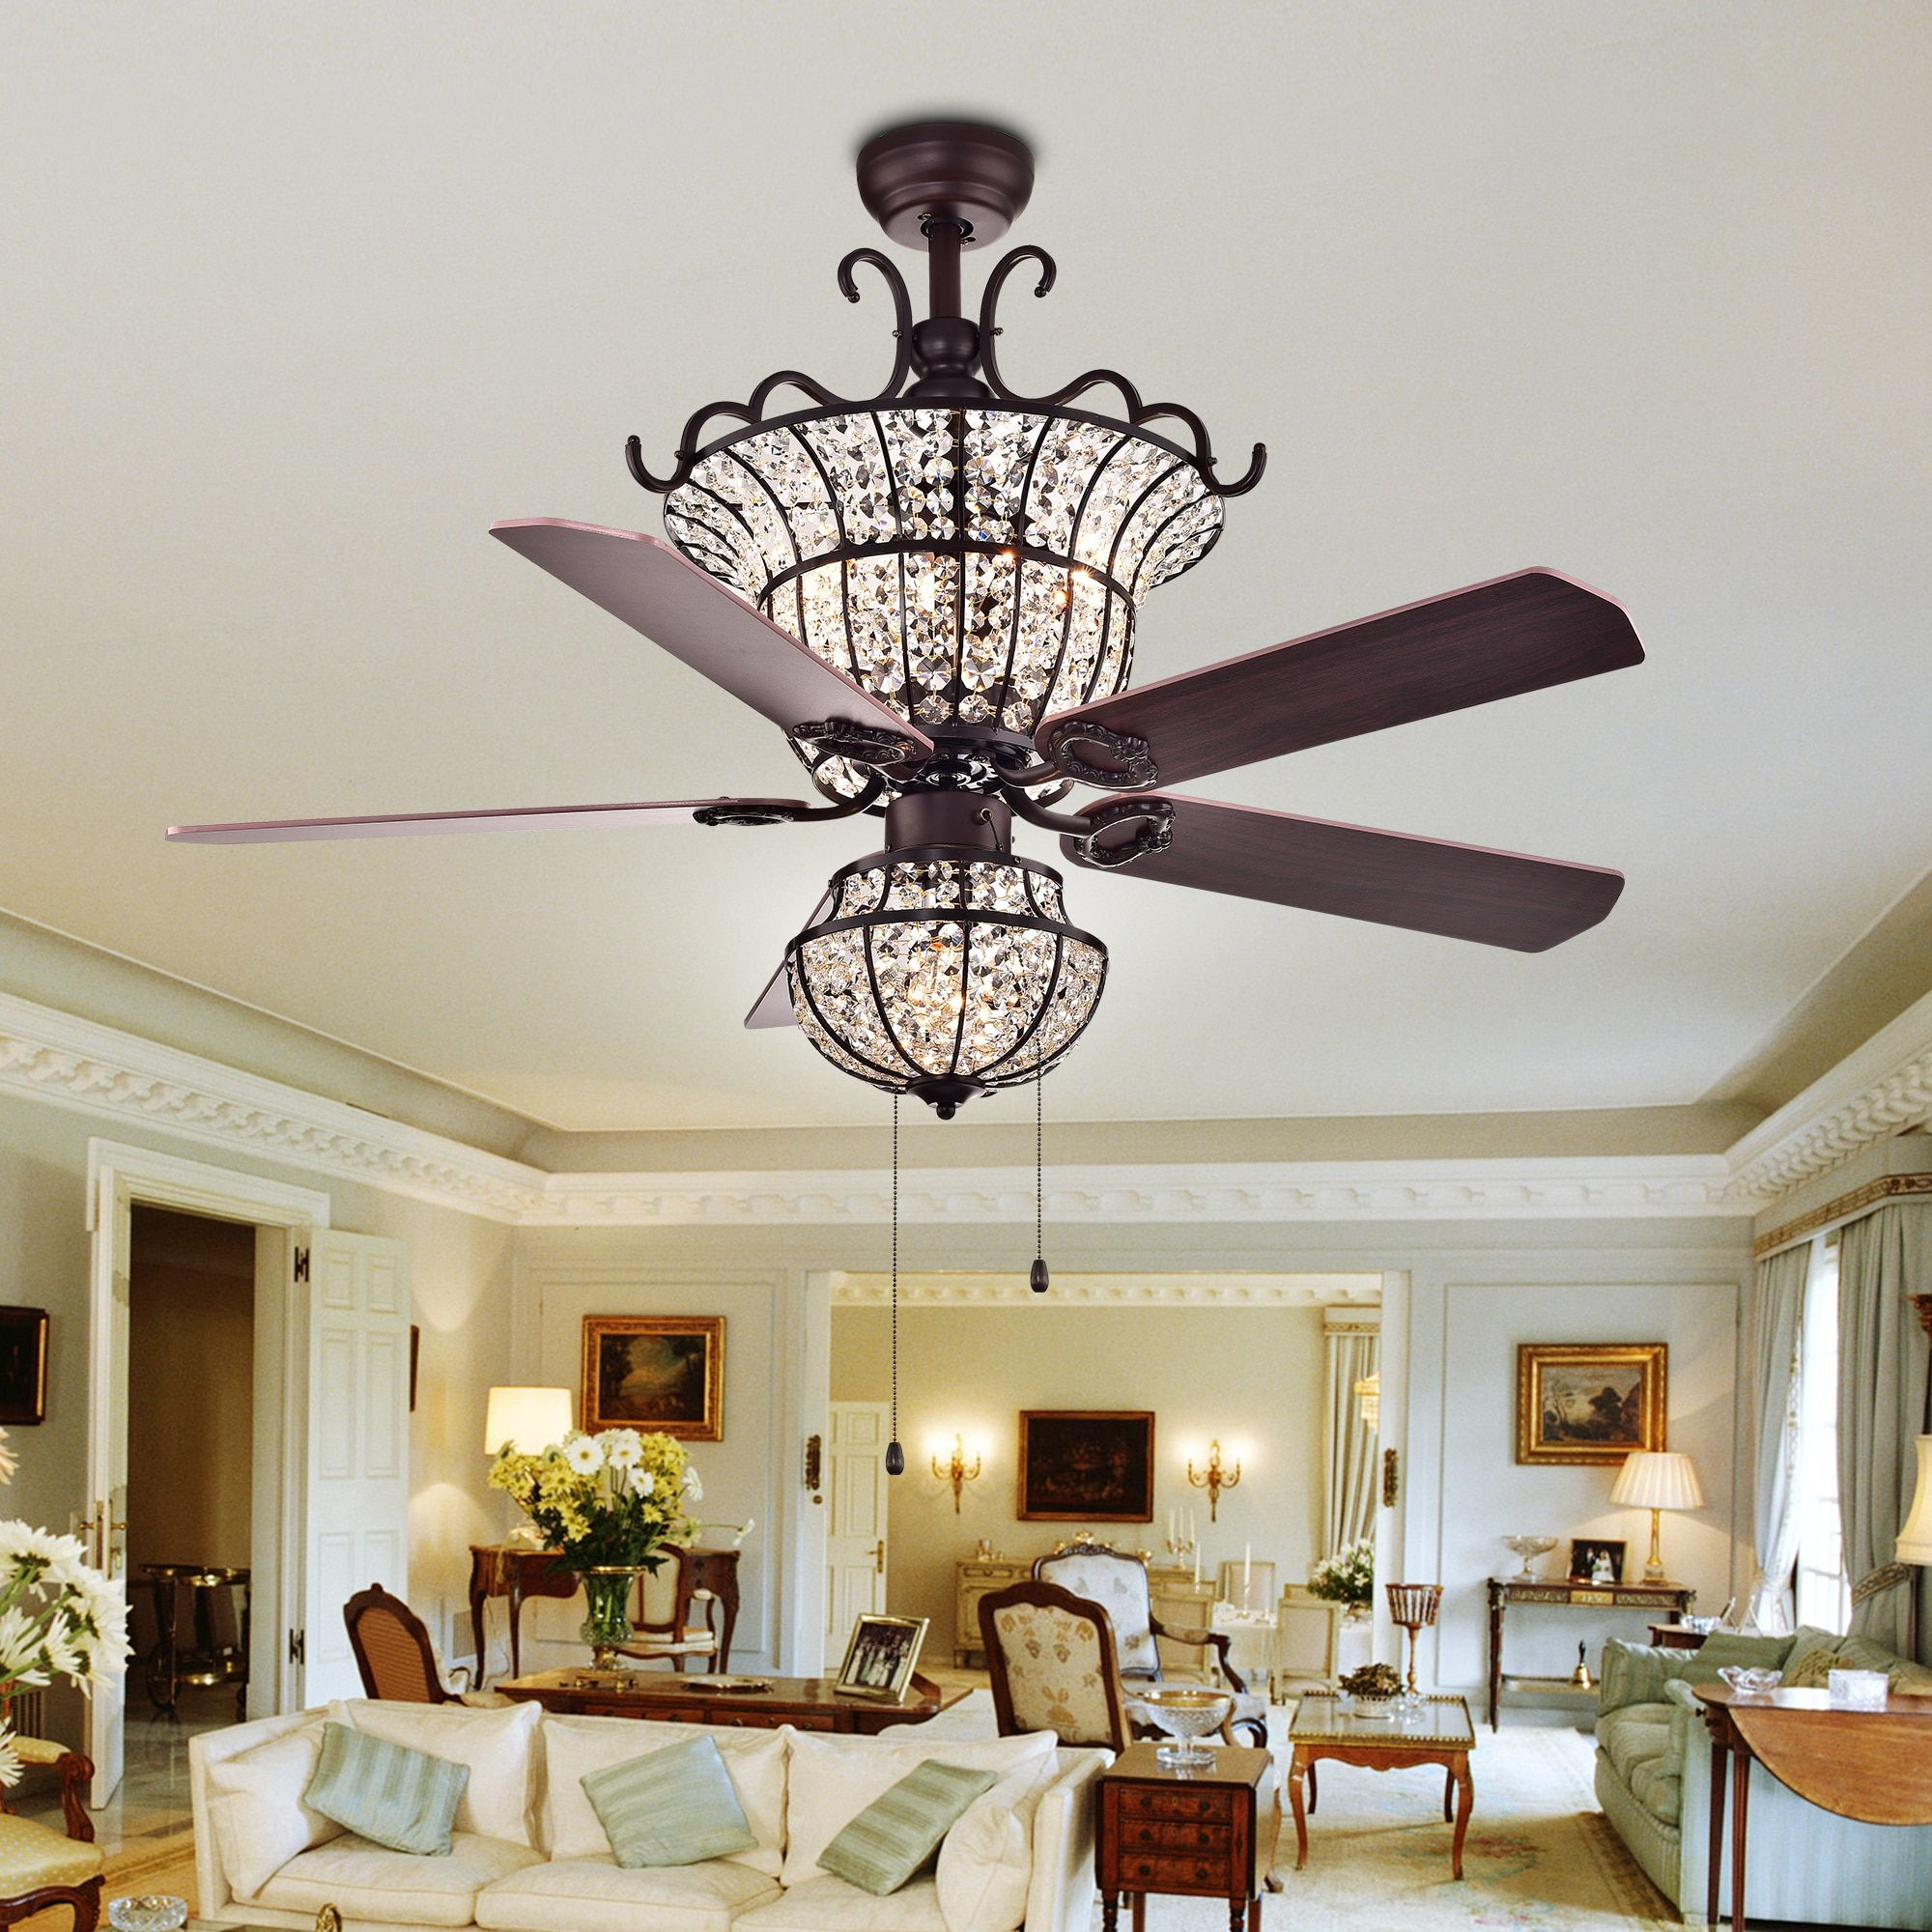 Warehouse Of Tiffany Charla 4 Light Crystal 52 Inch Chandelier Ceiling Fan